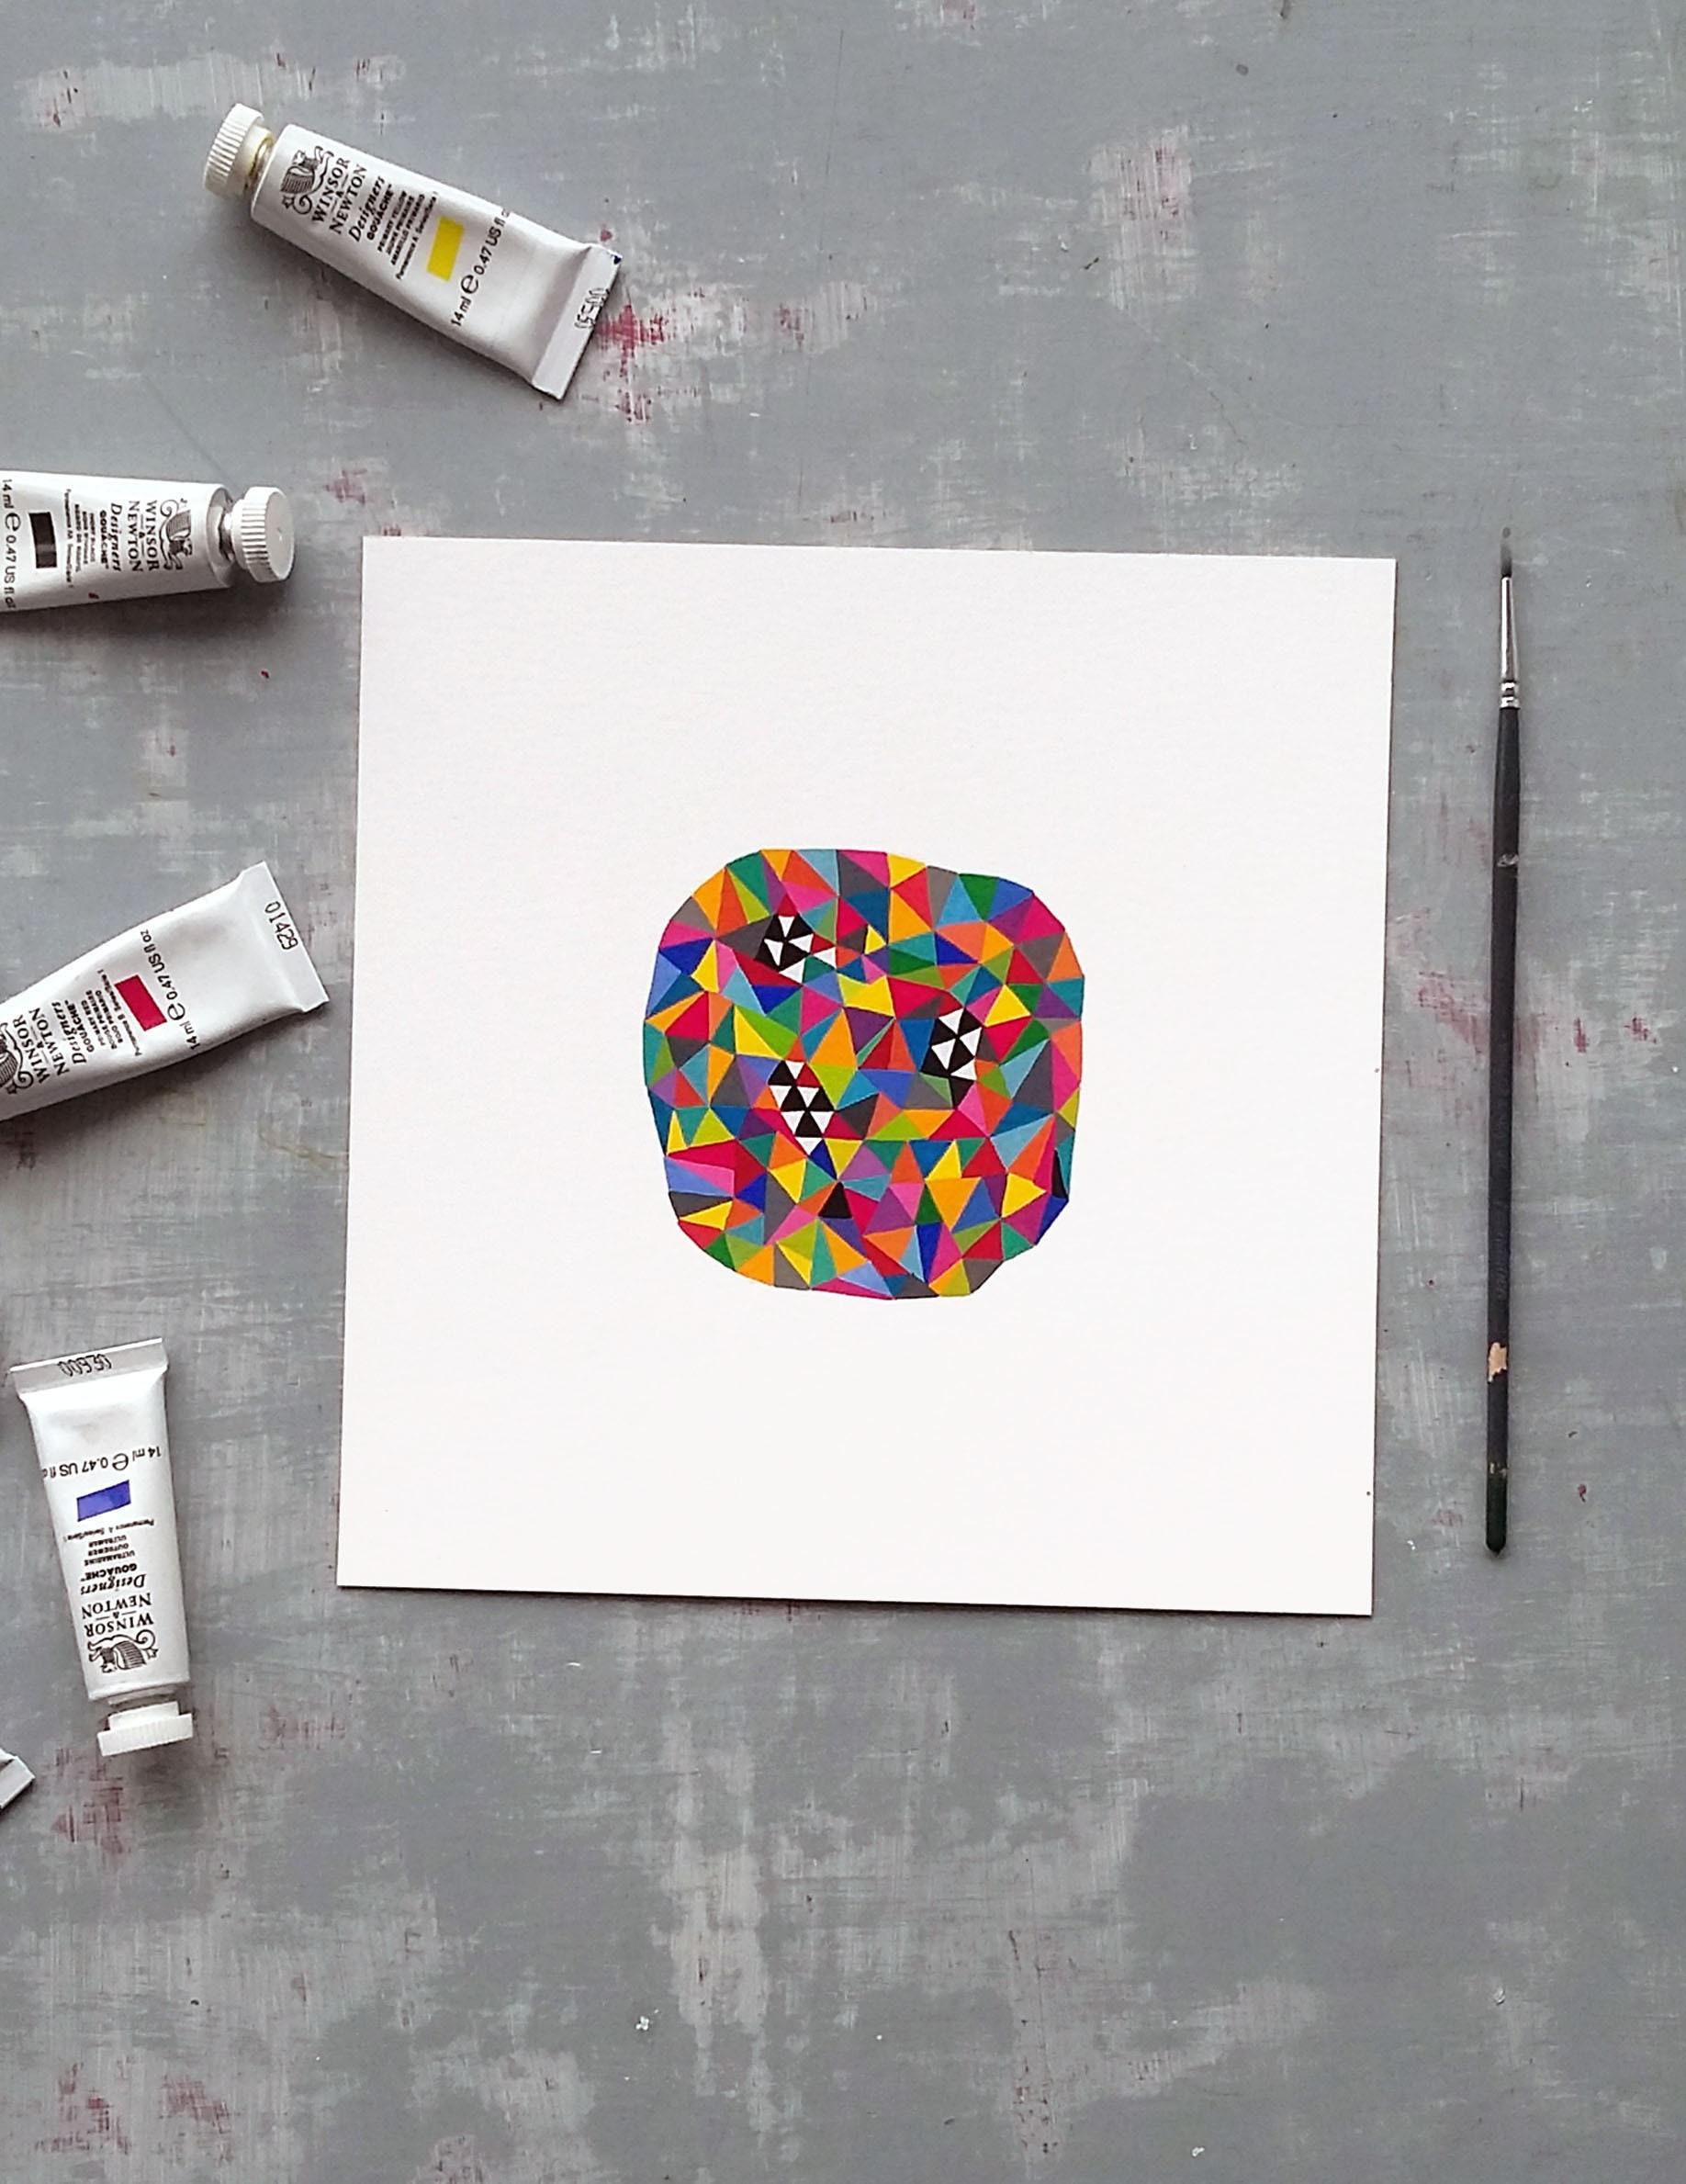 Bug_001, small geometric gouache painting on paper - product image